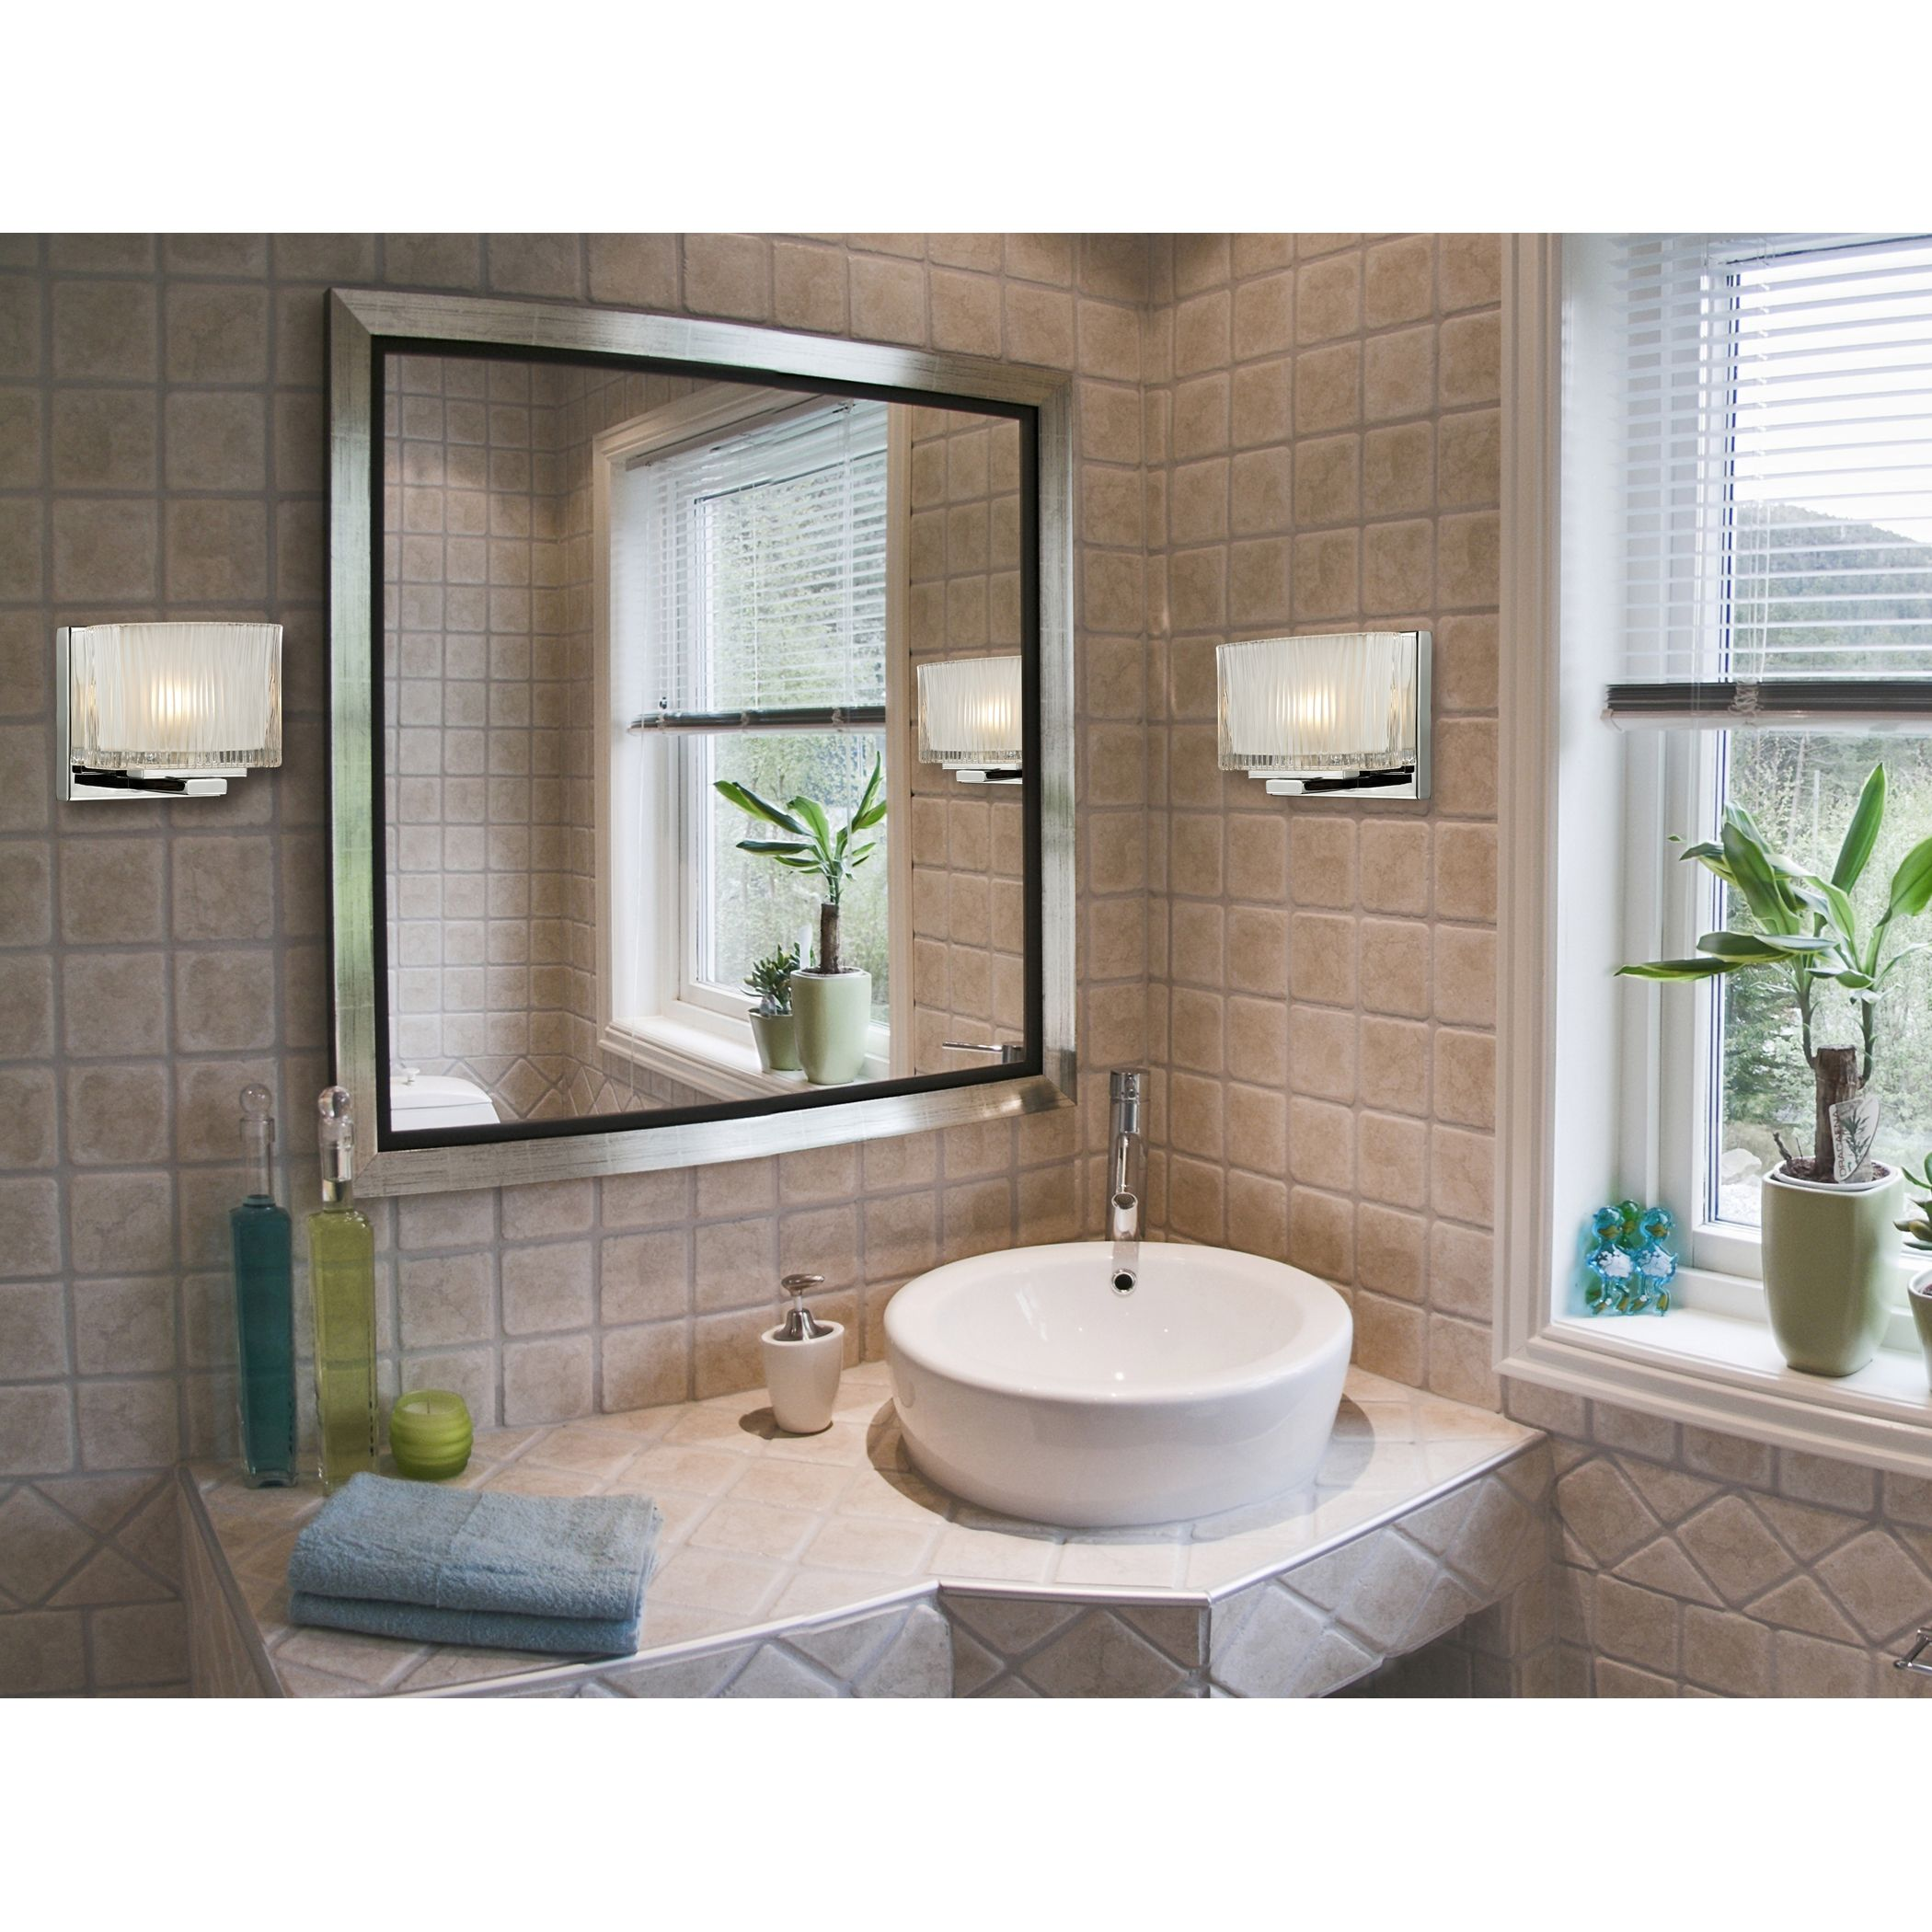 Chiseled Glass 1Light Bath In Polished Chrome  Elk Lighting Glamorous Wall Sconces Bathroom Inspiration Design